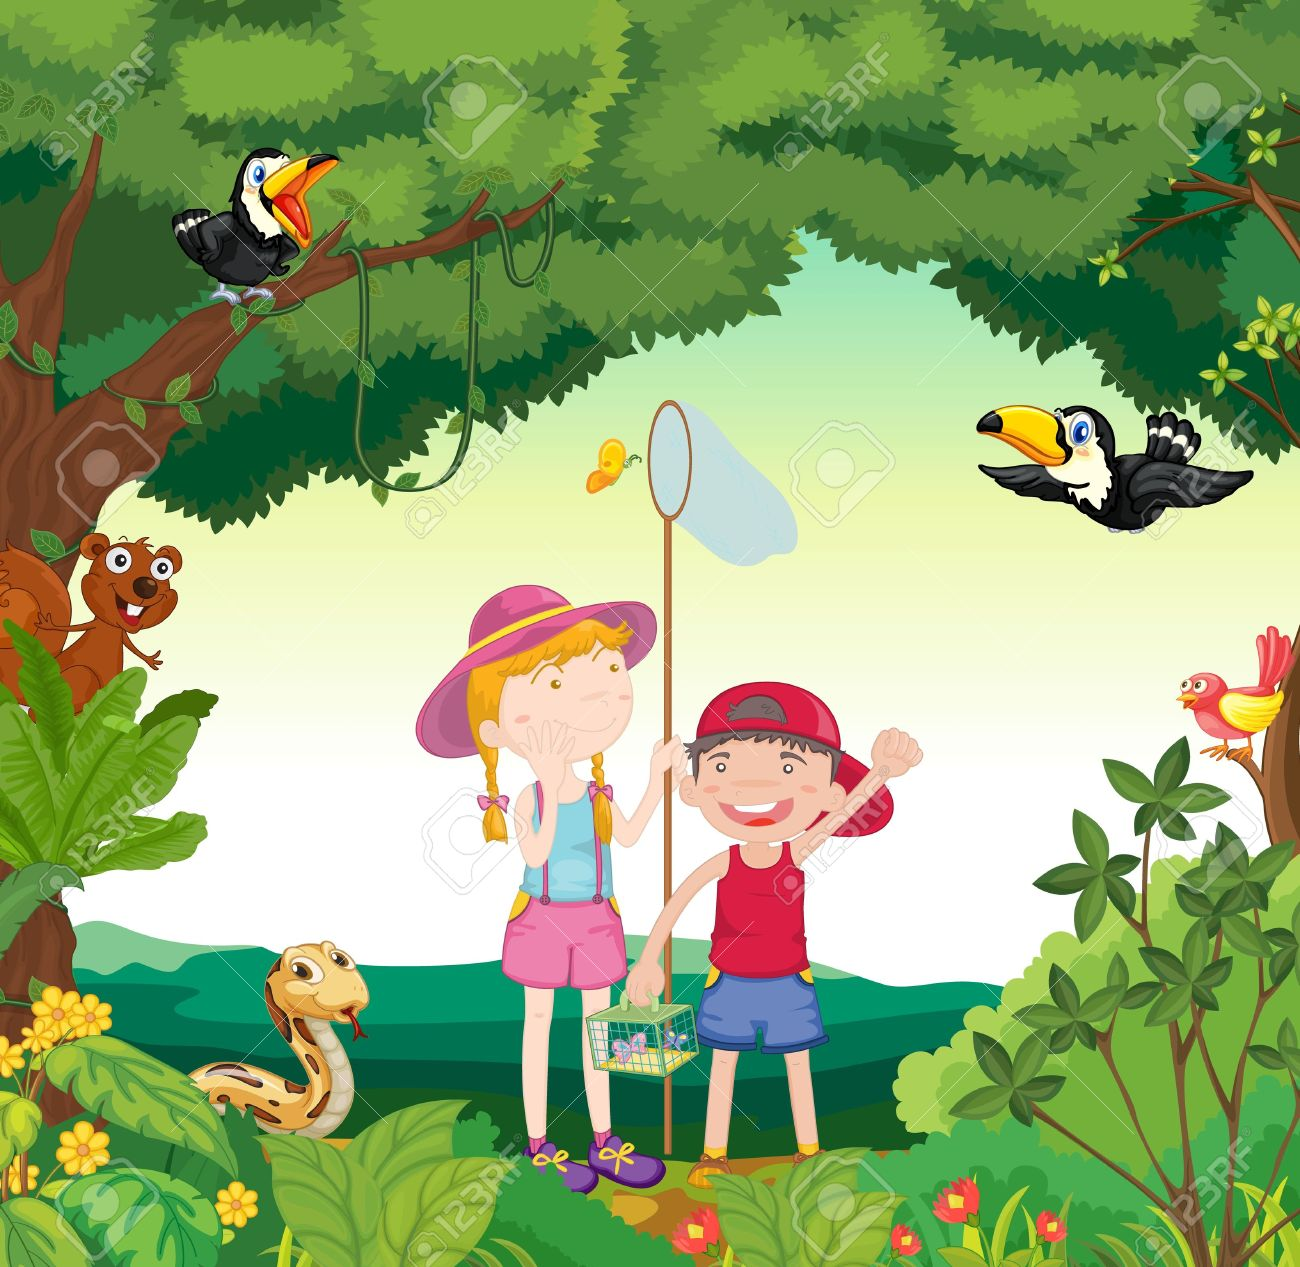 illustration of animals birds and kids in a beautiful nature